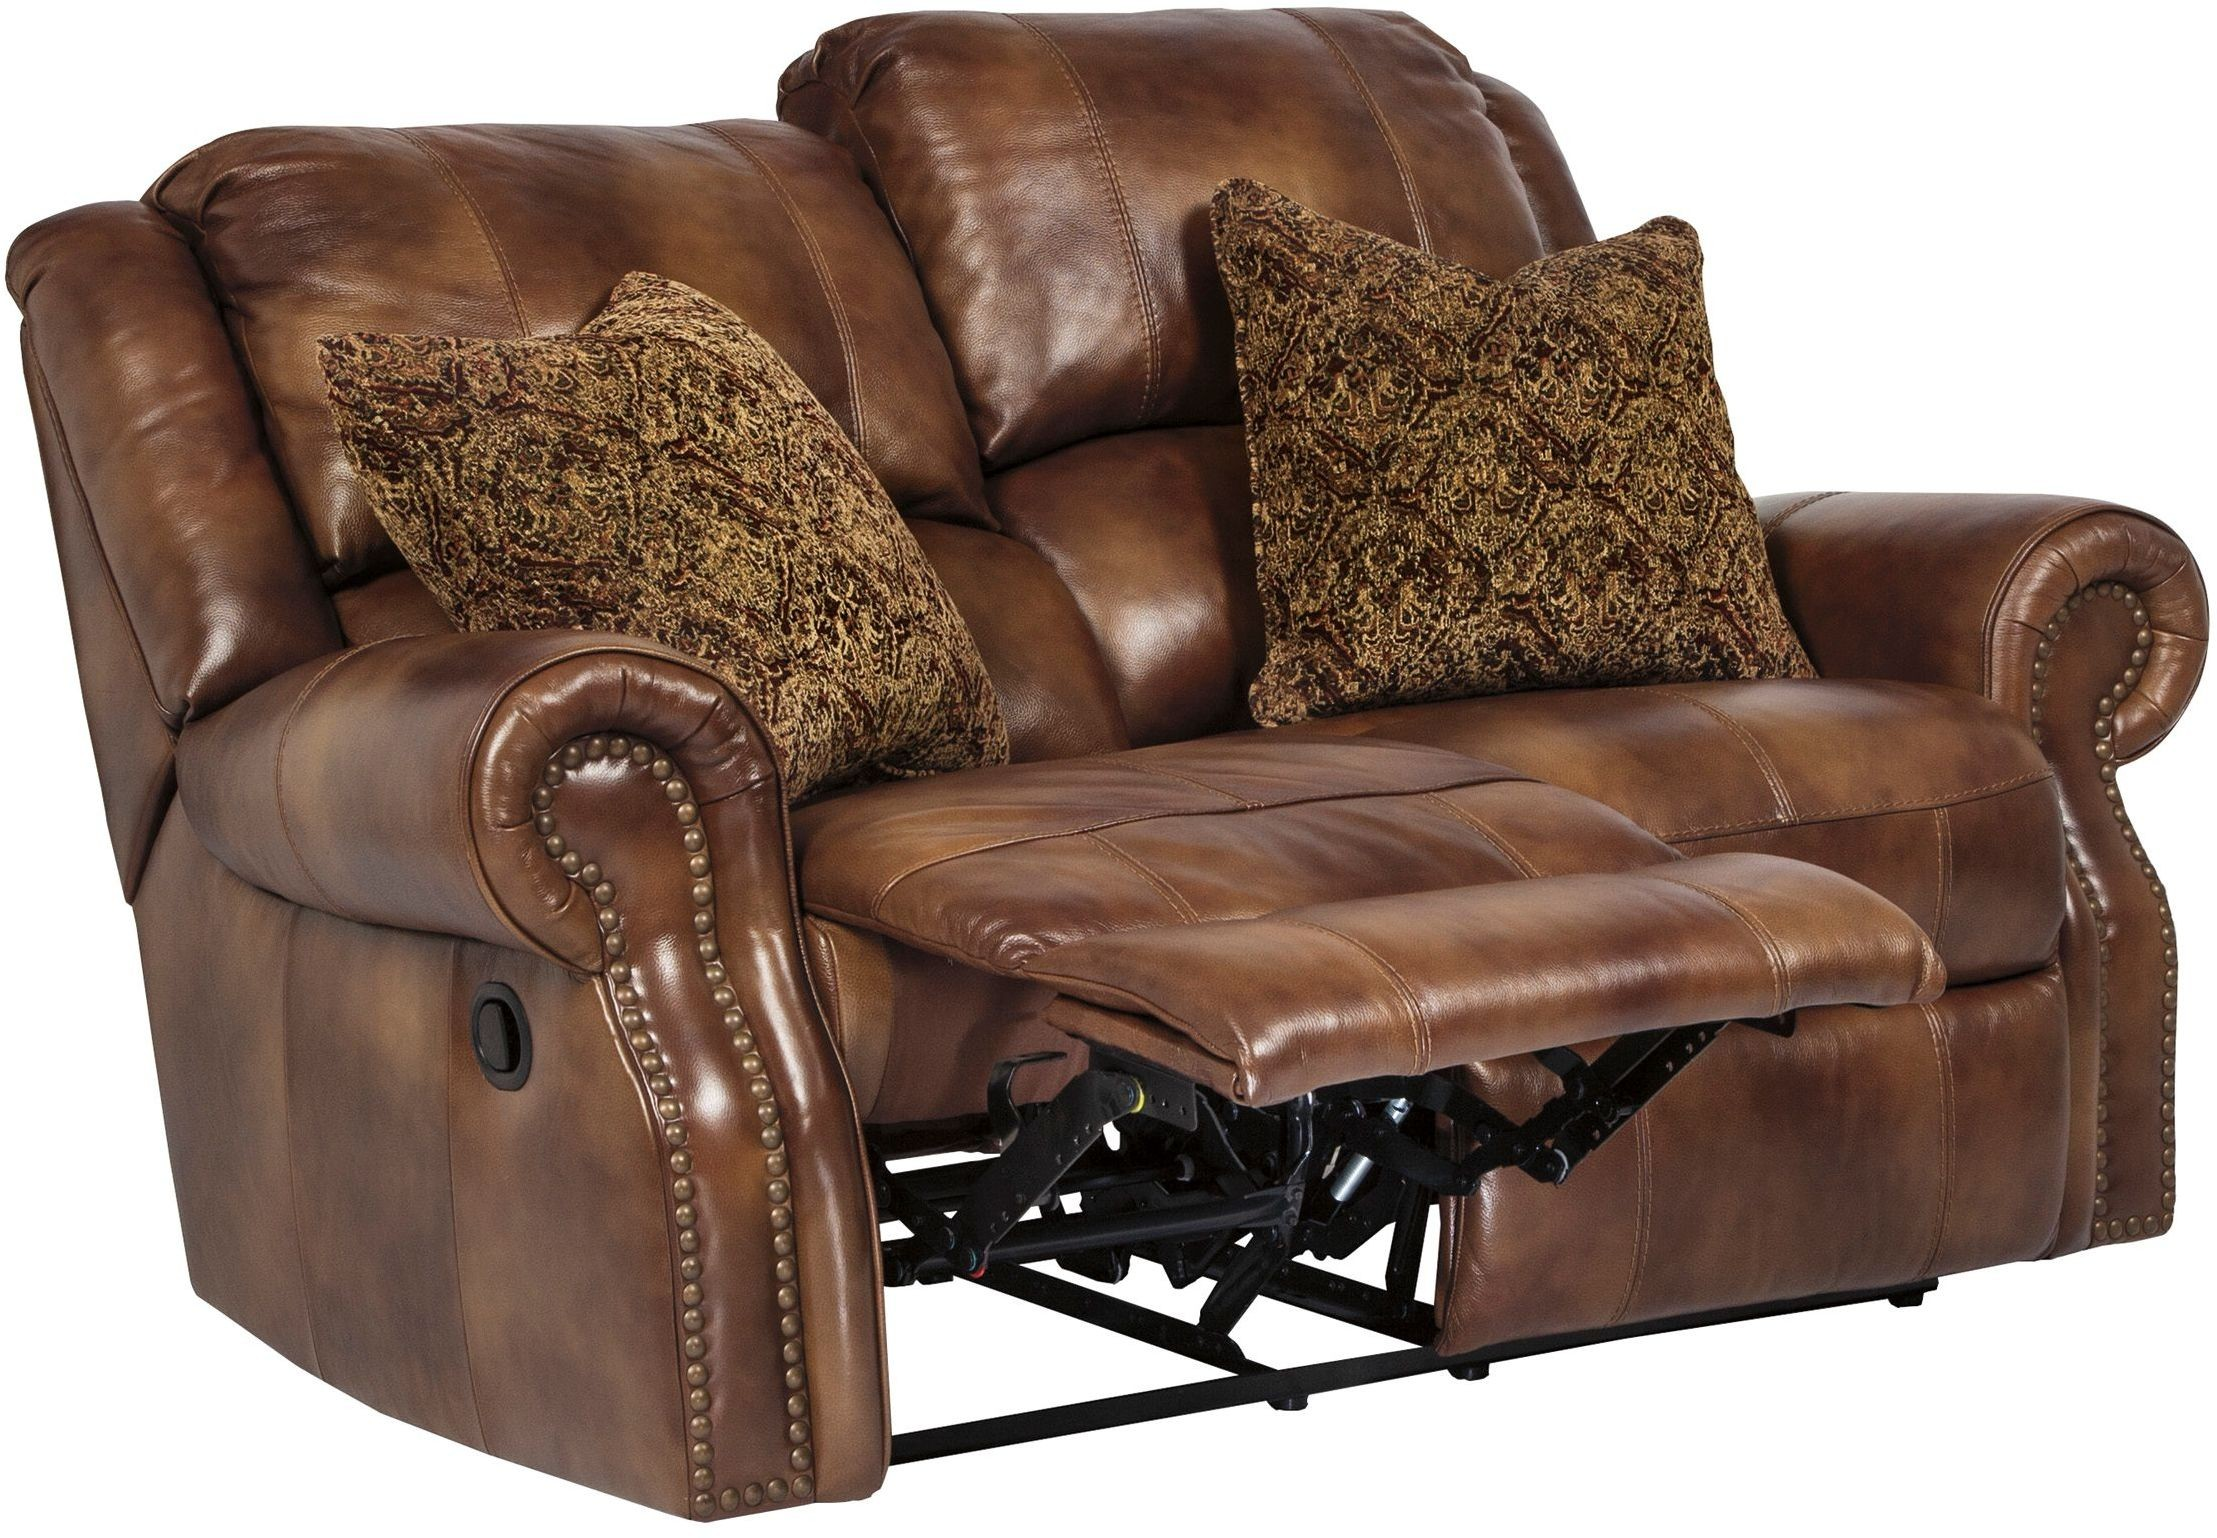 Walworth Auburn Reclining Loveseat From Ashley U7800186